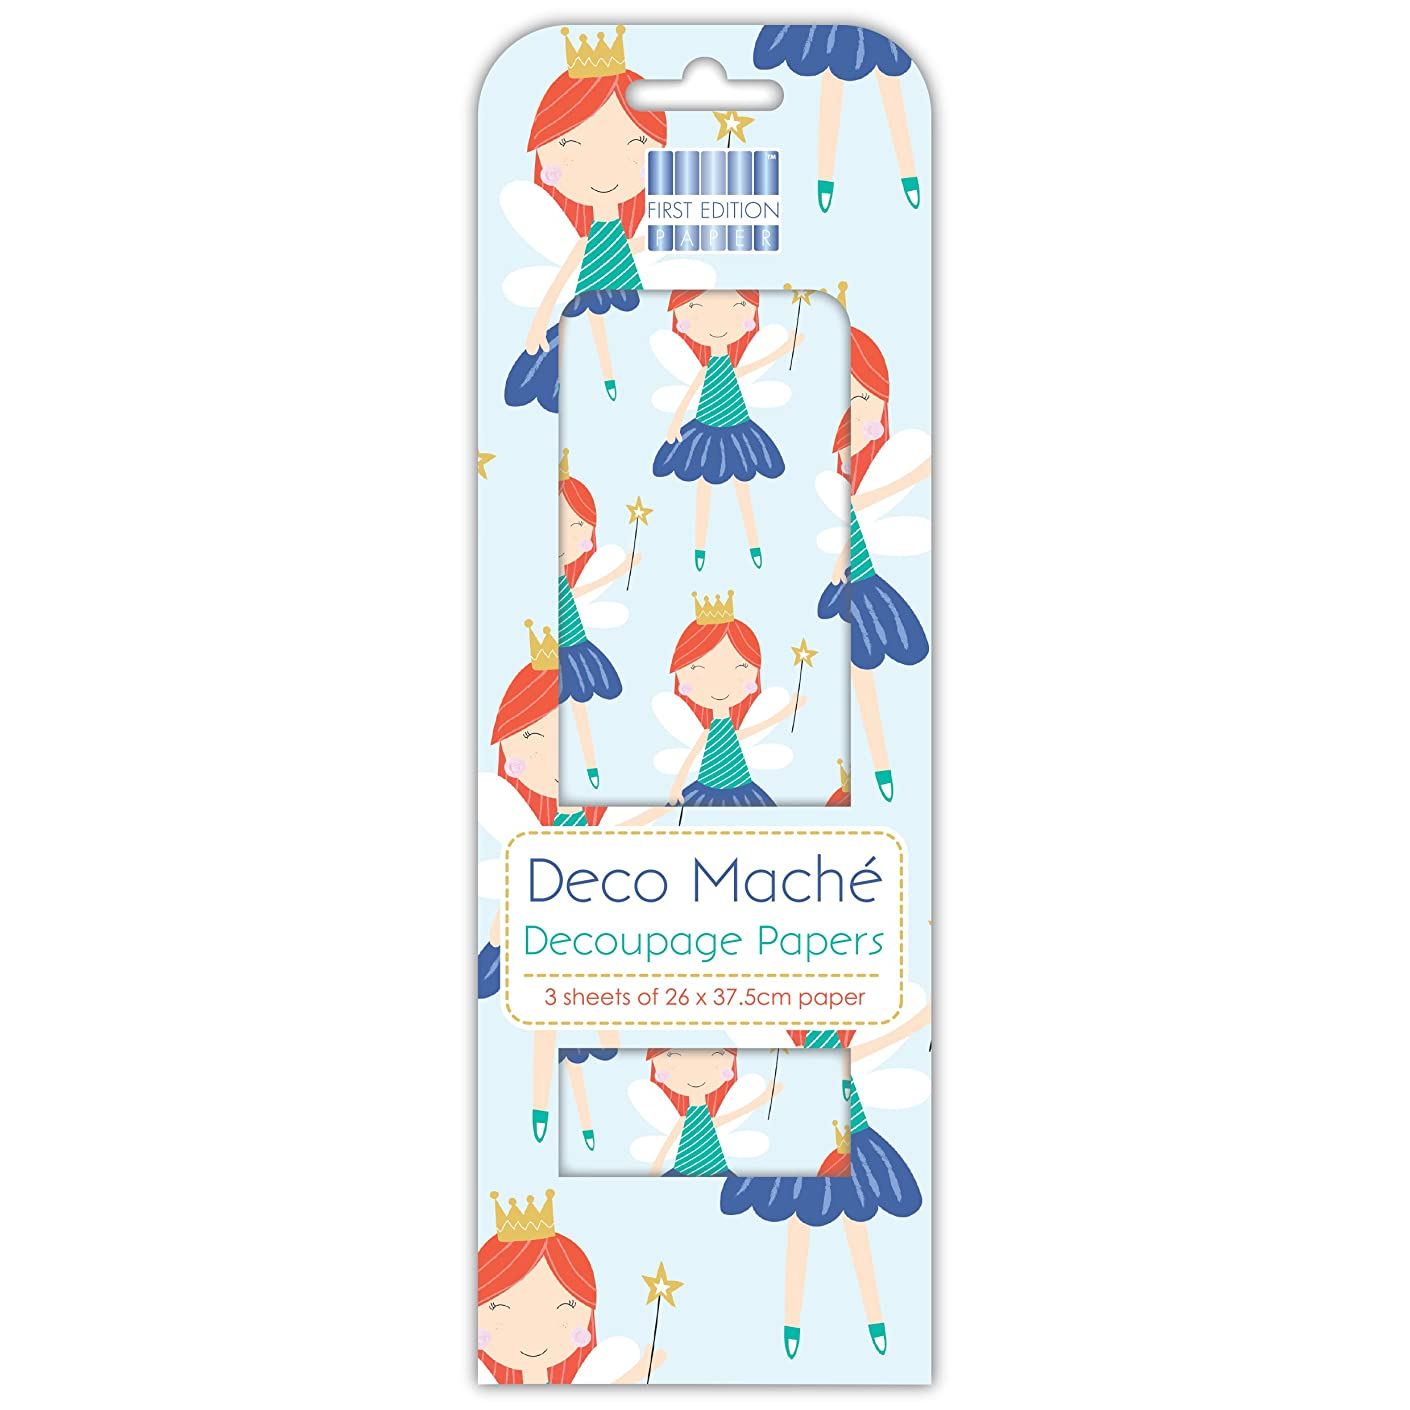 First Edition Deco Mache Decoupage Craft Papers - Fairy- Borders - 3 Sheets - 22gsm - 26 x 37.5 cm  Papers -  Home Crafts - Upcycling - Papermache